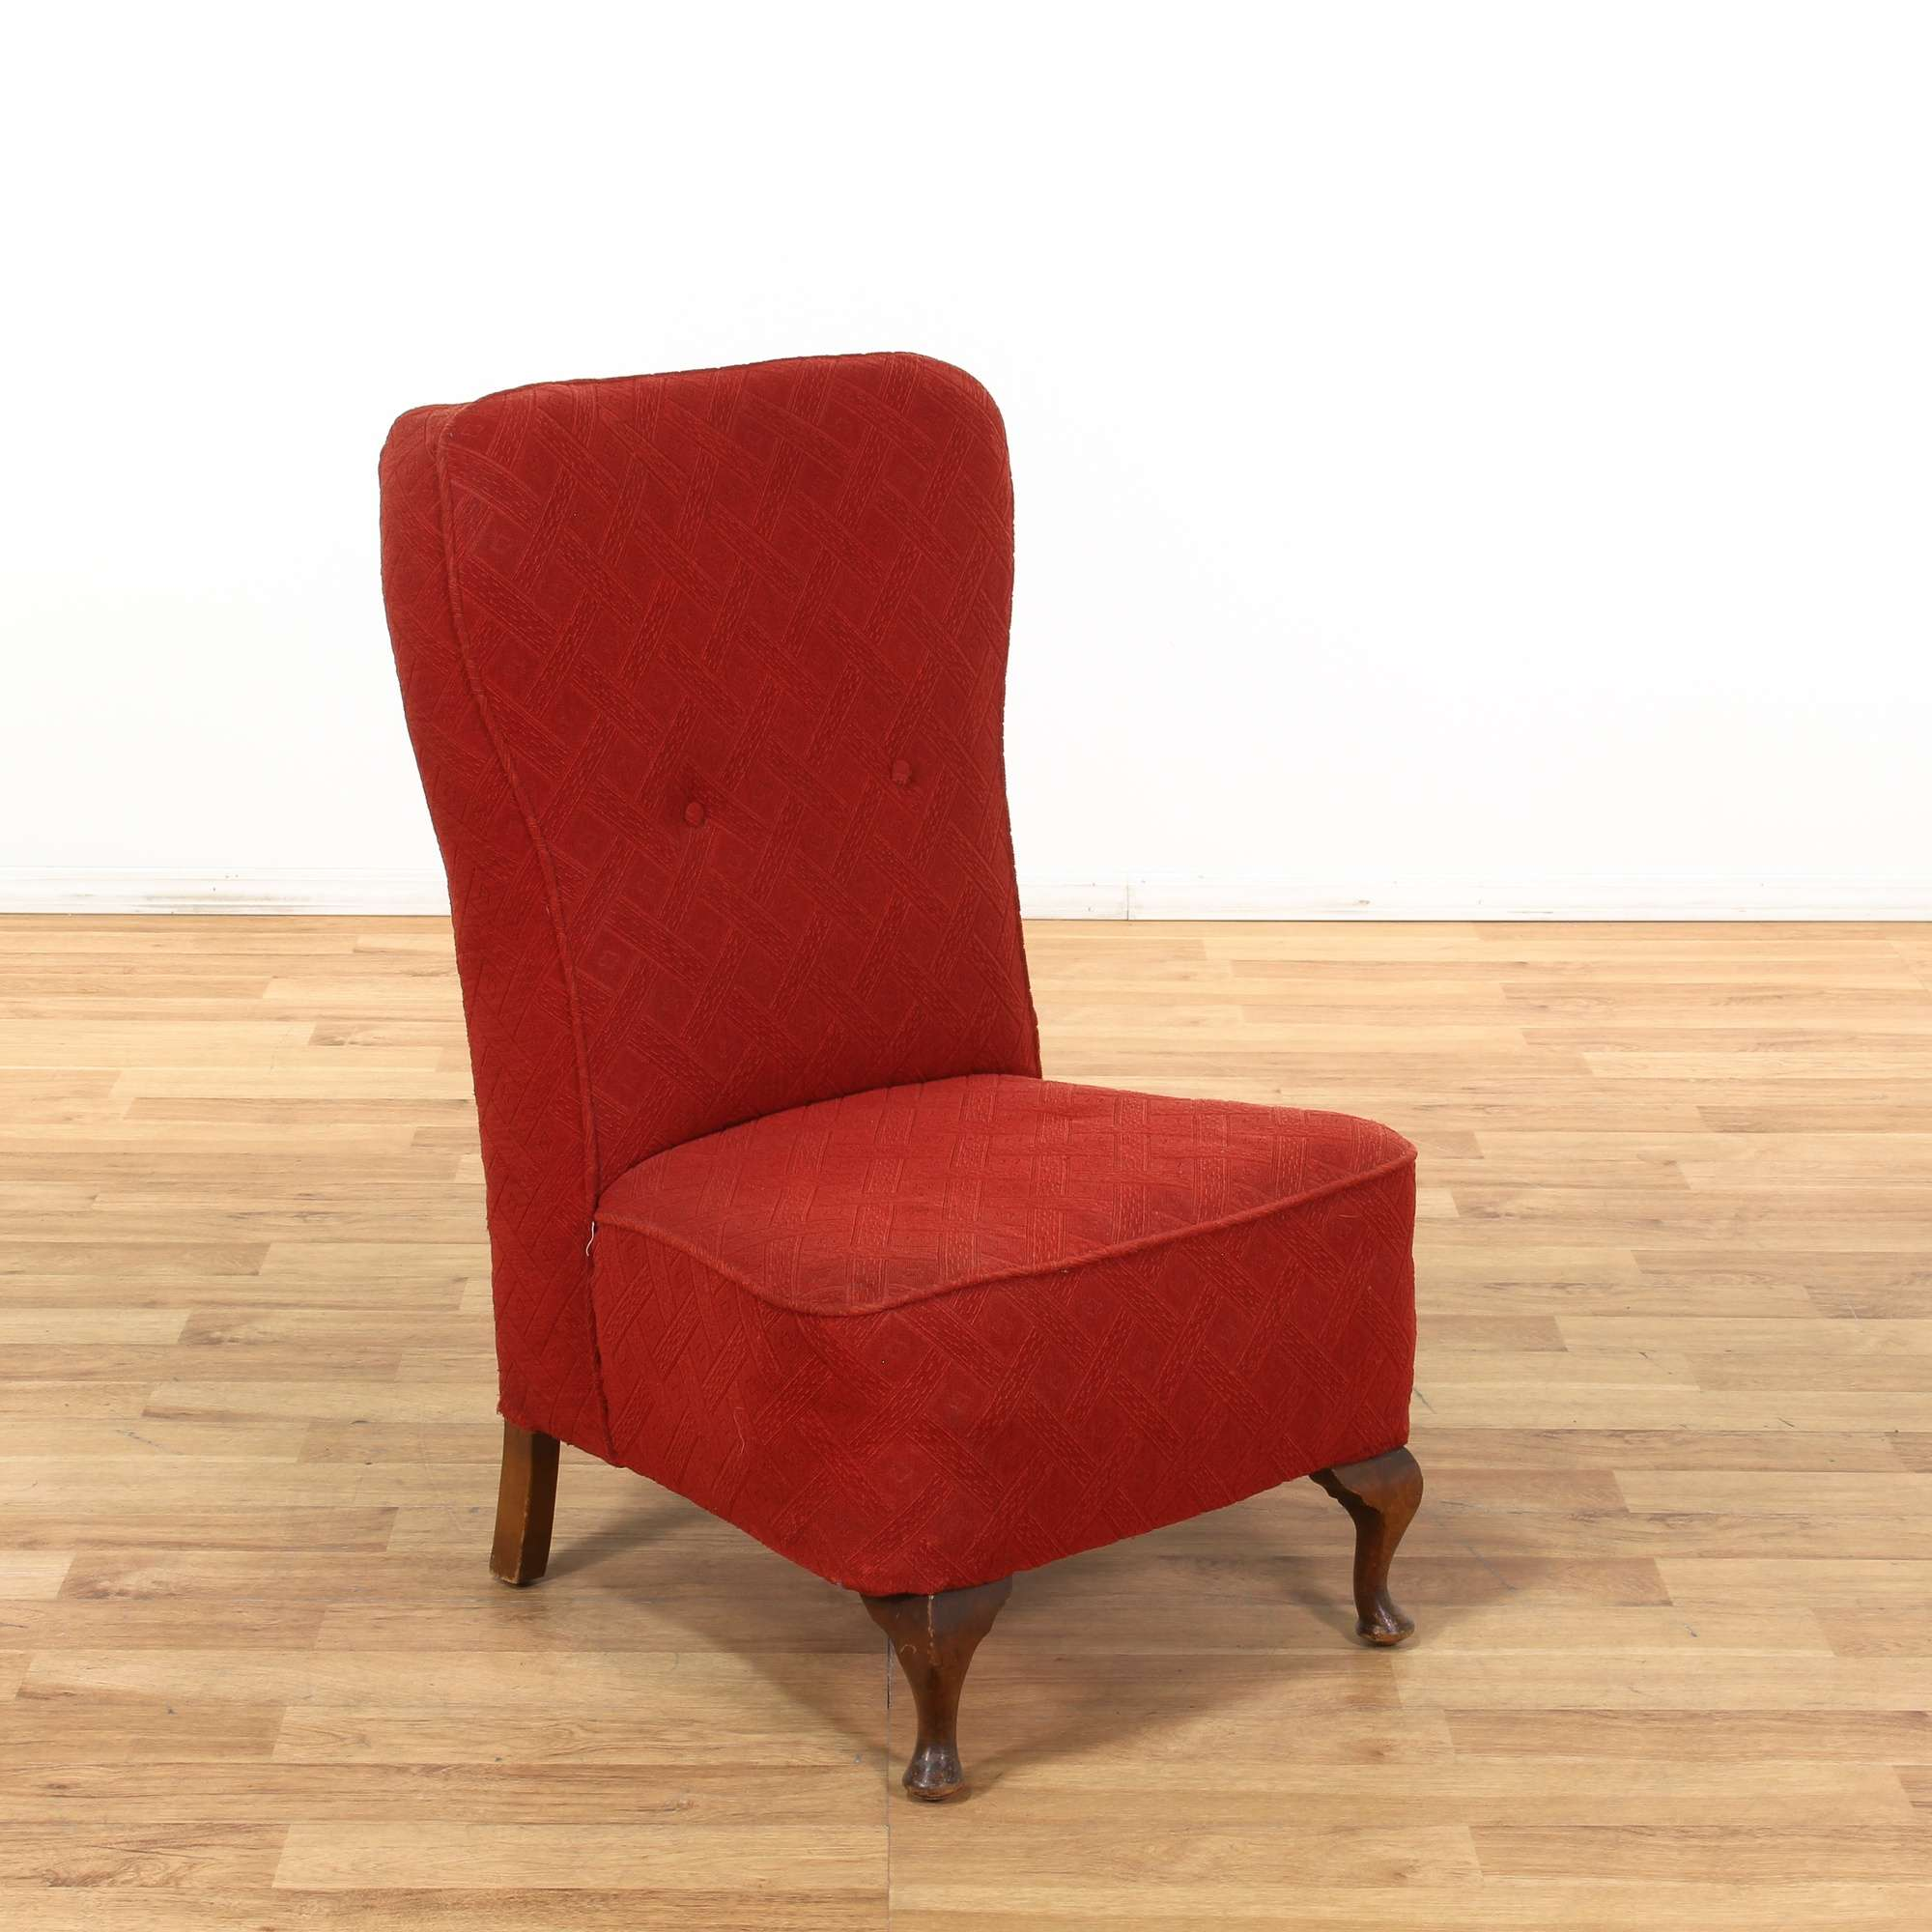 Incredible Red Horsehair Textured Accent Chair Loveseat Vintage Ibusinesslaw Wood Chair Design Ideas Ibusinesslaworg